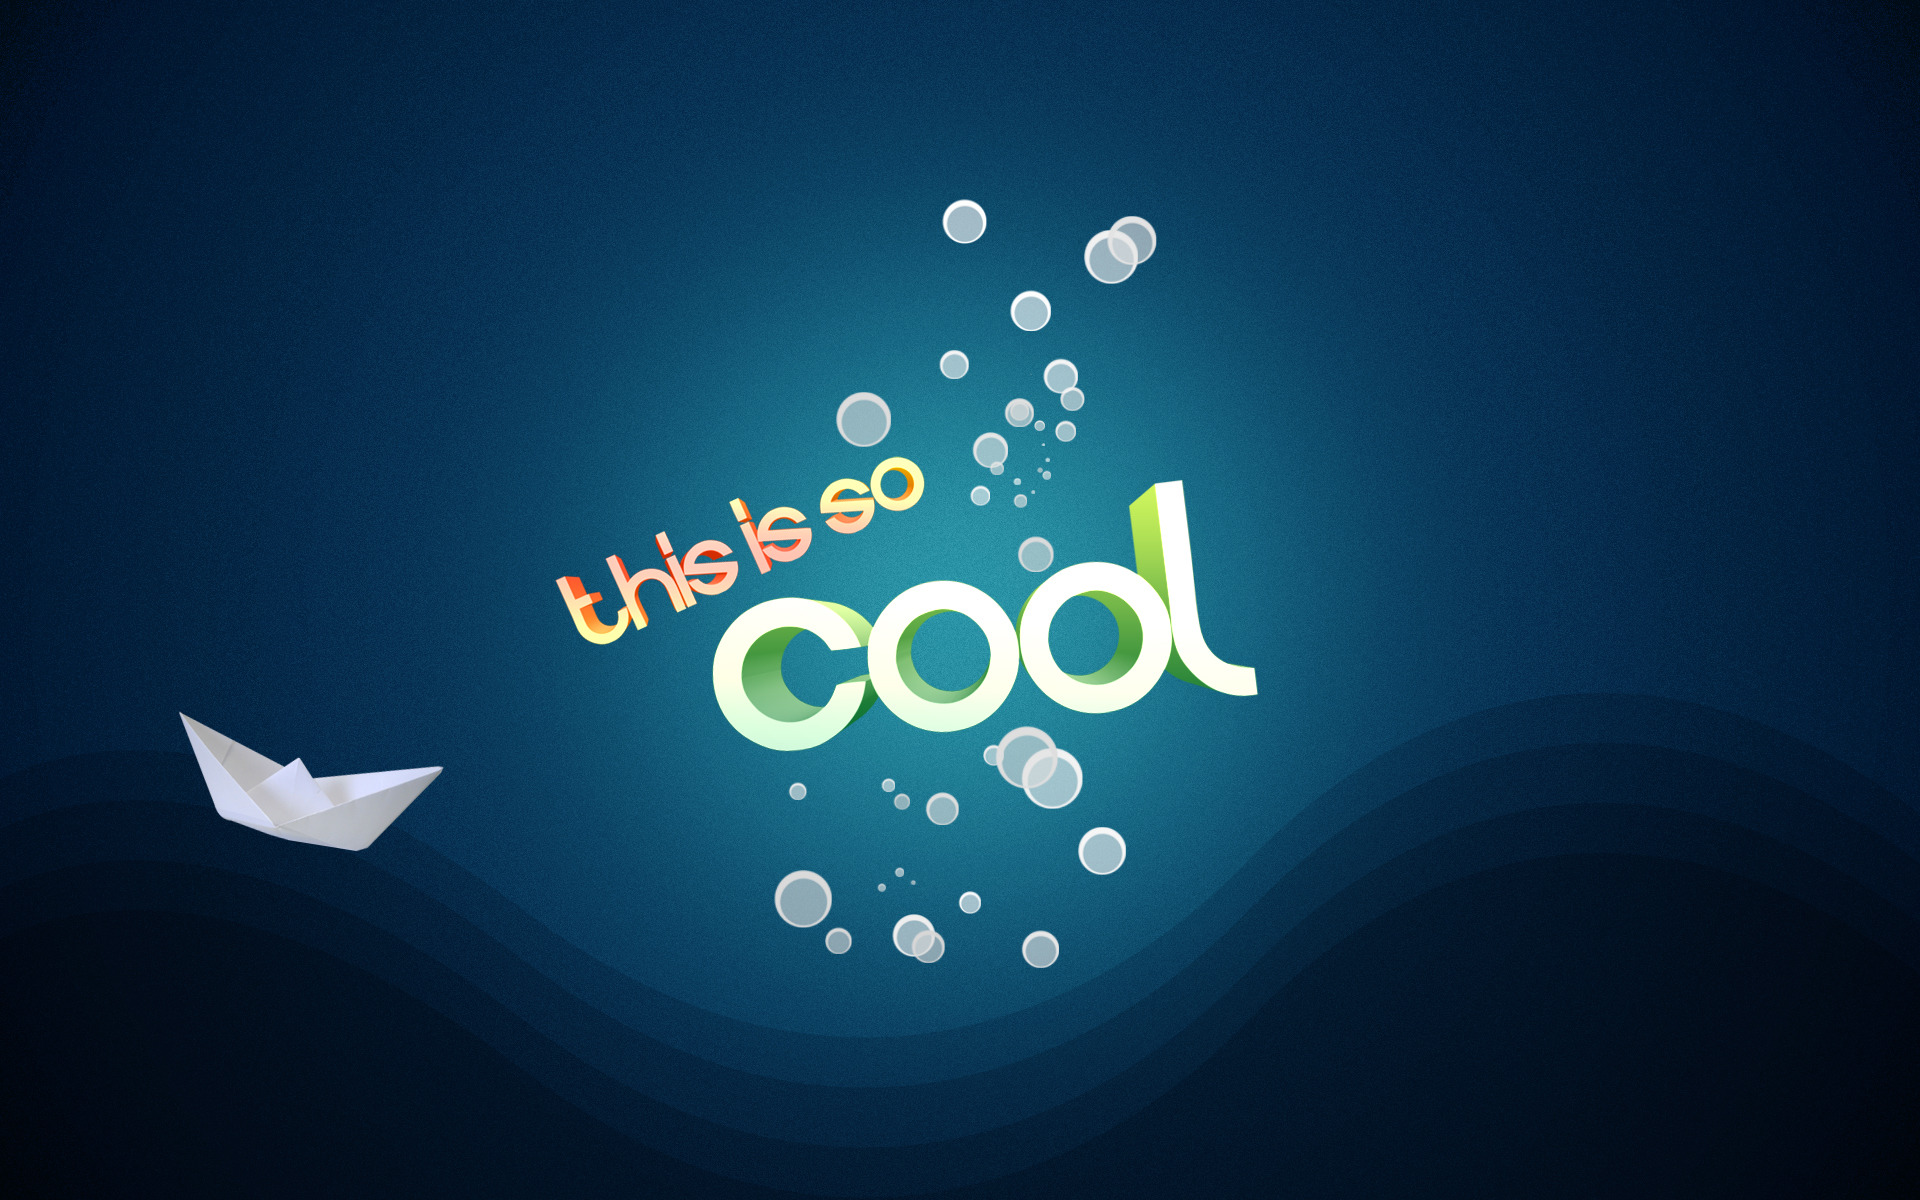 Cool HD Wallpaper Theme Bin   Customization HD Wallpapers 1920x1200